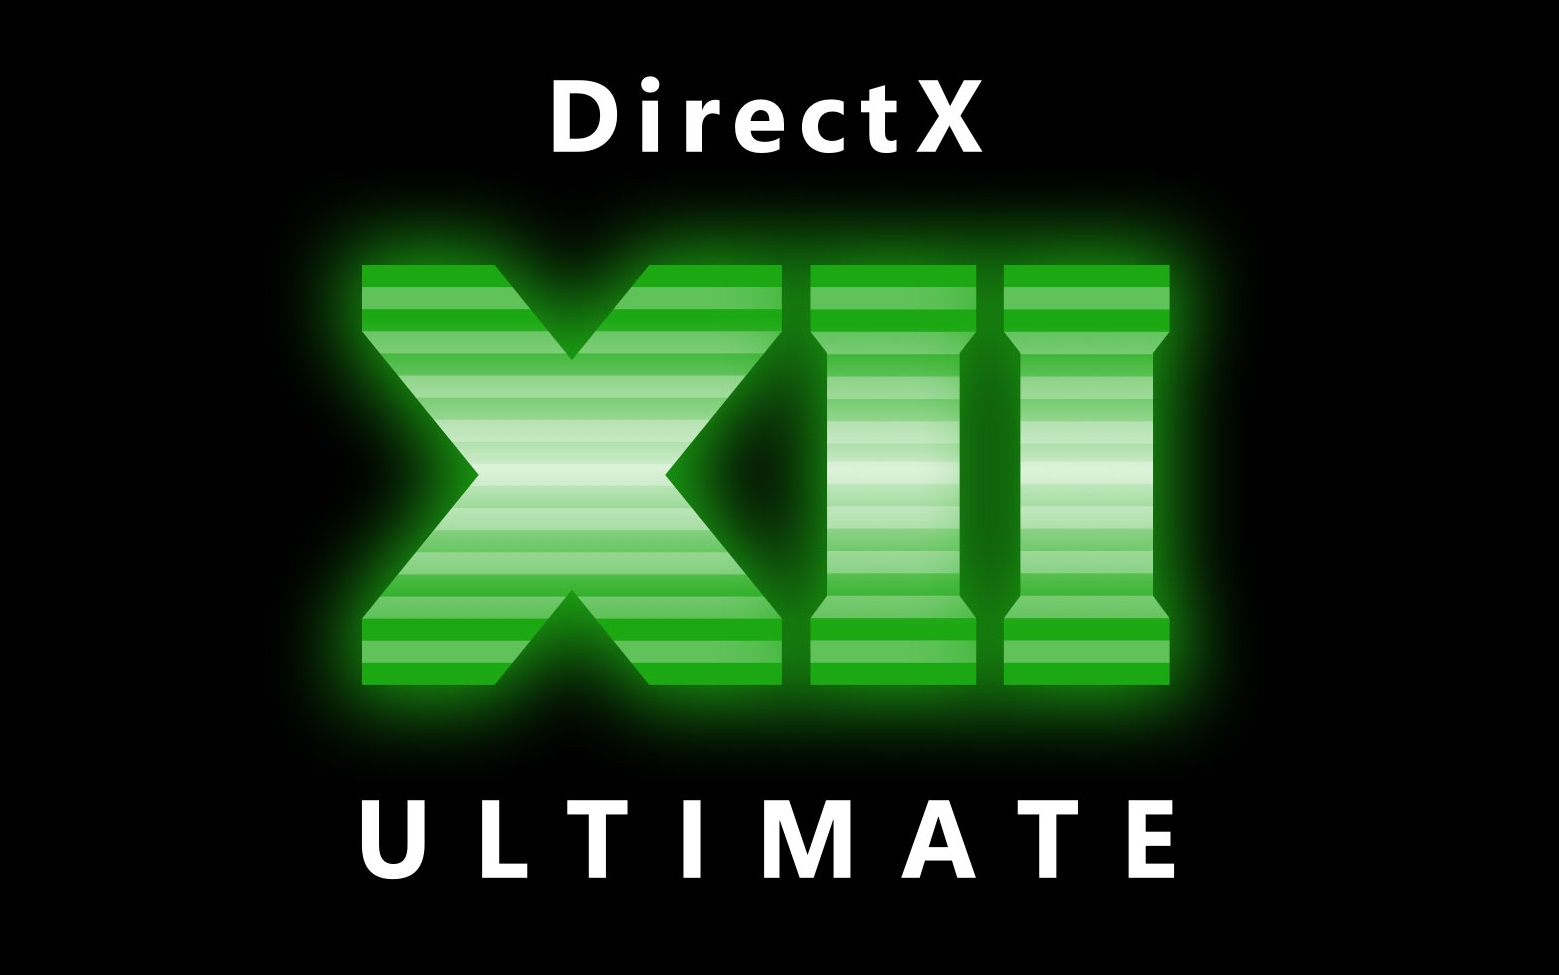 Microsoft представила графическую технологию DirectX 12 Ultimate